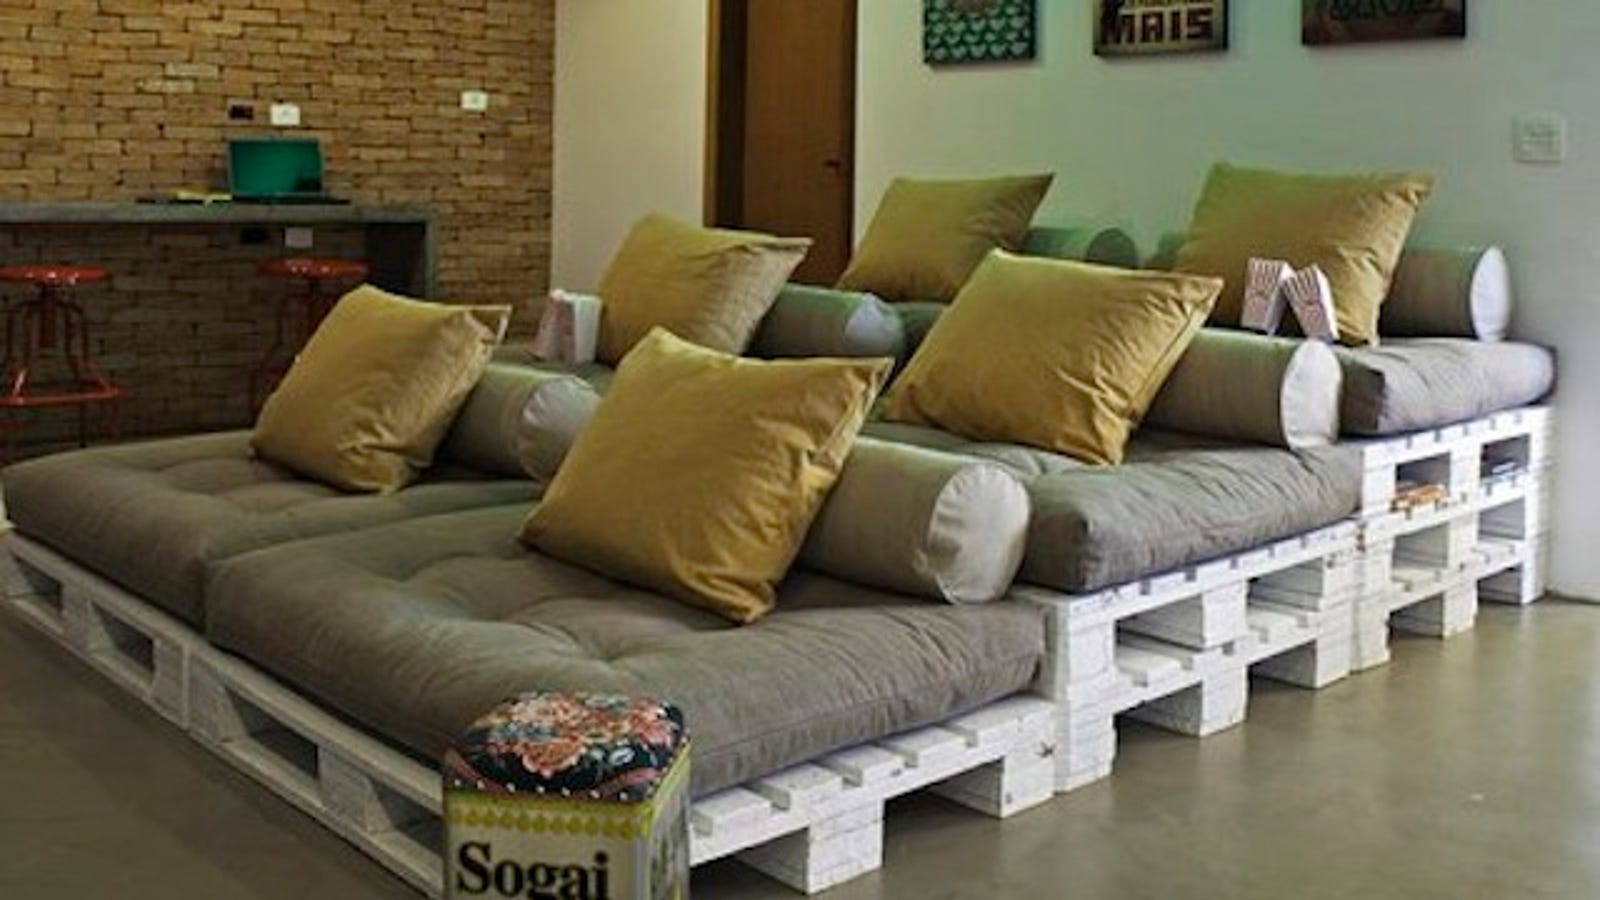 inexpensive home theater seating. Build Stadium-Style Home Theater Seating On The Cheap With Shipping Pallets Inexpensive